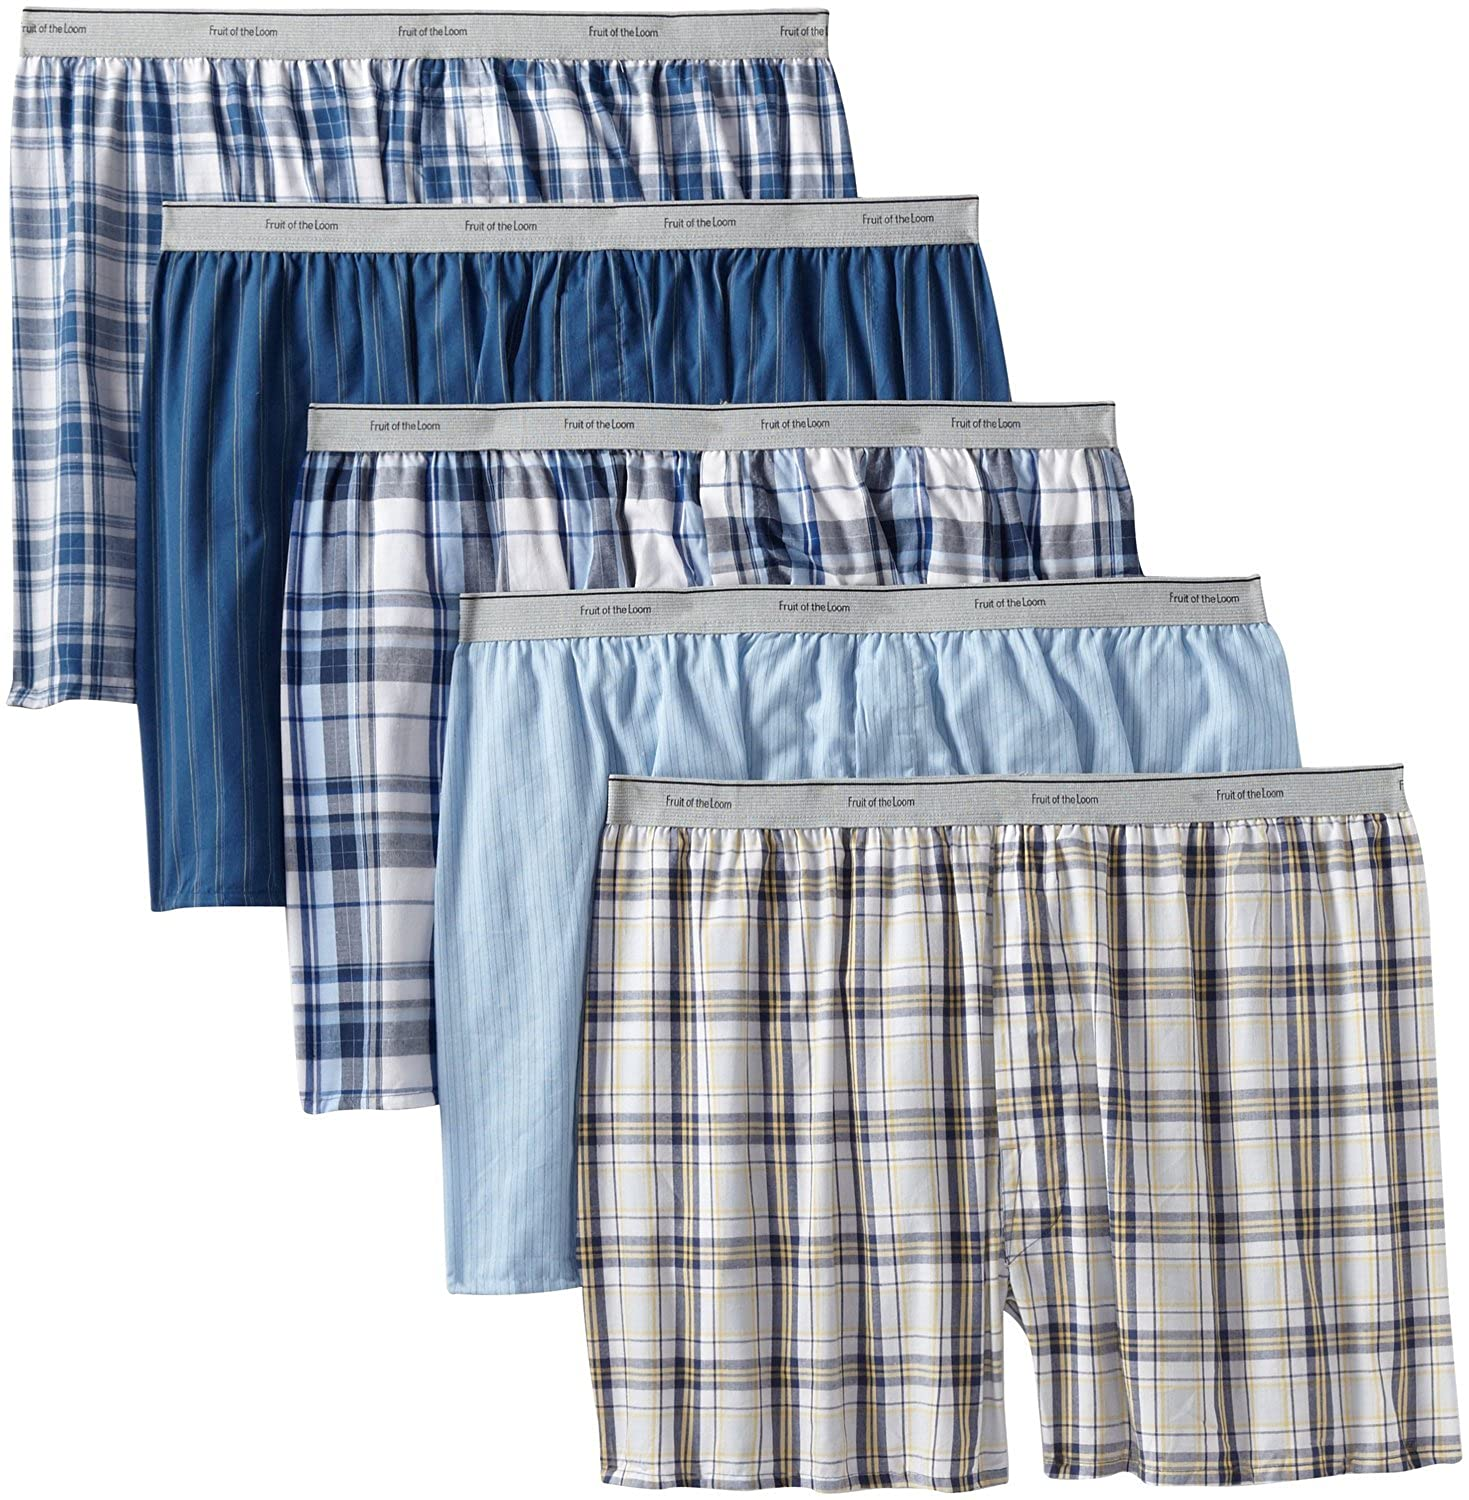 Fruit of the Loom Mens 5Pack Exposed-Waist Boxer Shorts Boxers Underwear XL